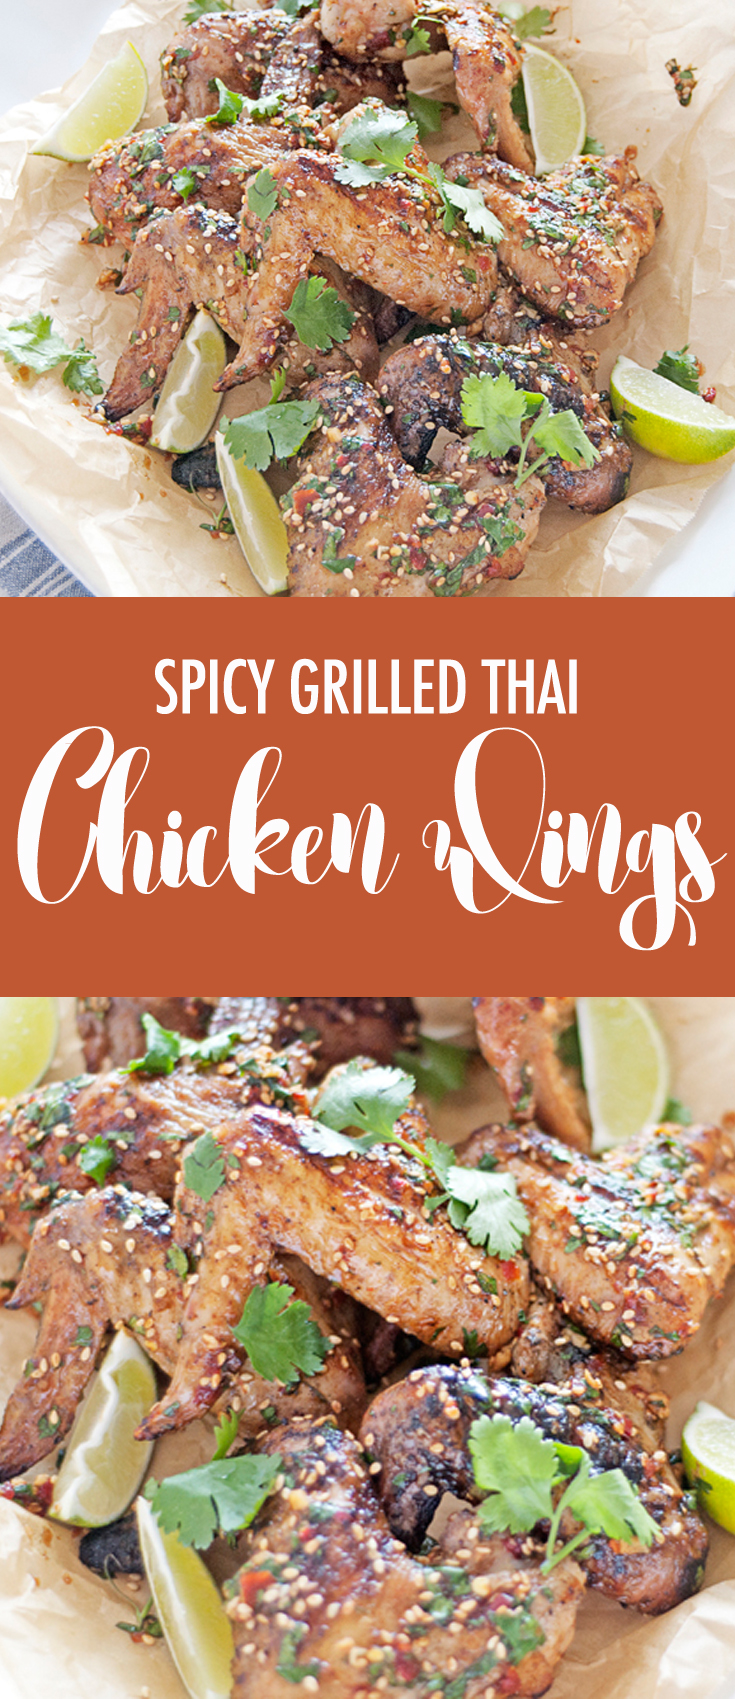 These Thai chicken wings are perfect for those warm summer grilling nights, and feature a beautifully spicy Thai sauce and lots of fresh cilantro!